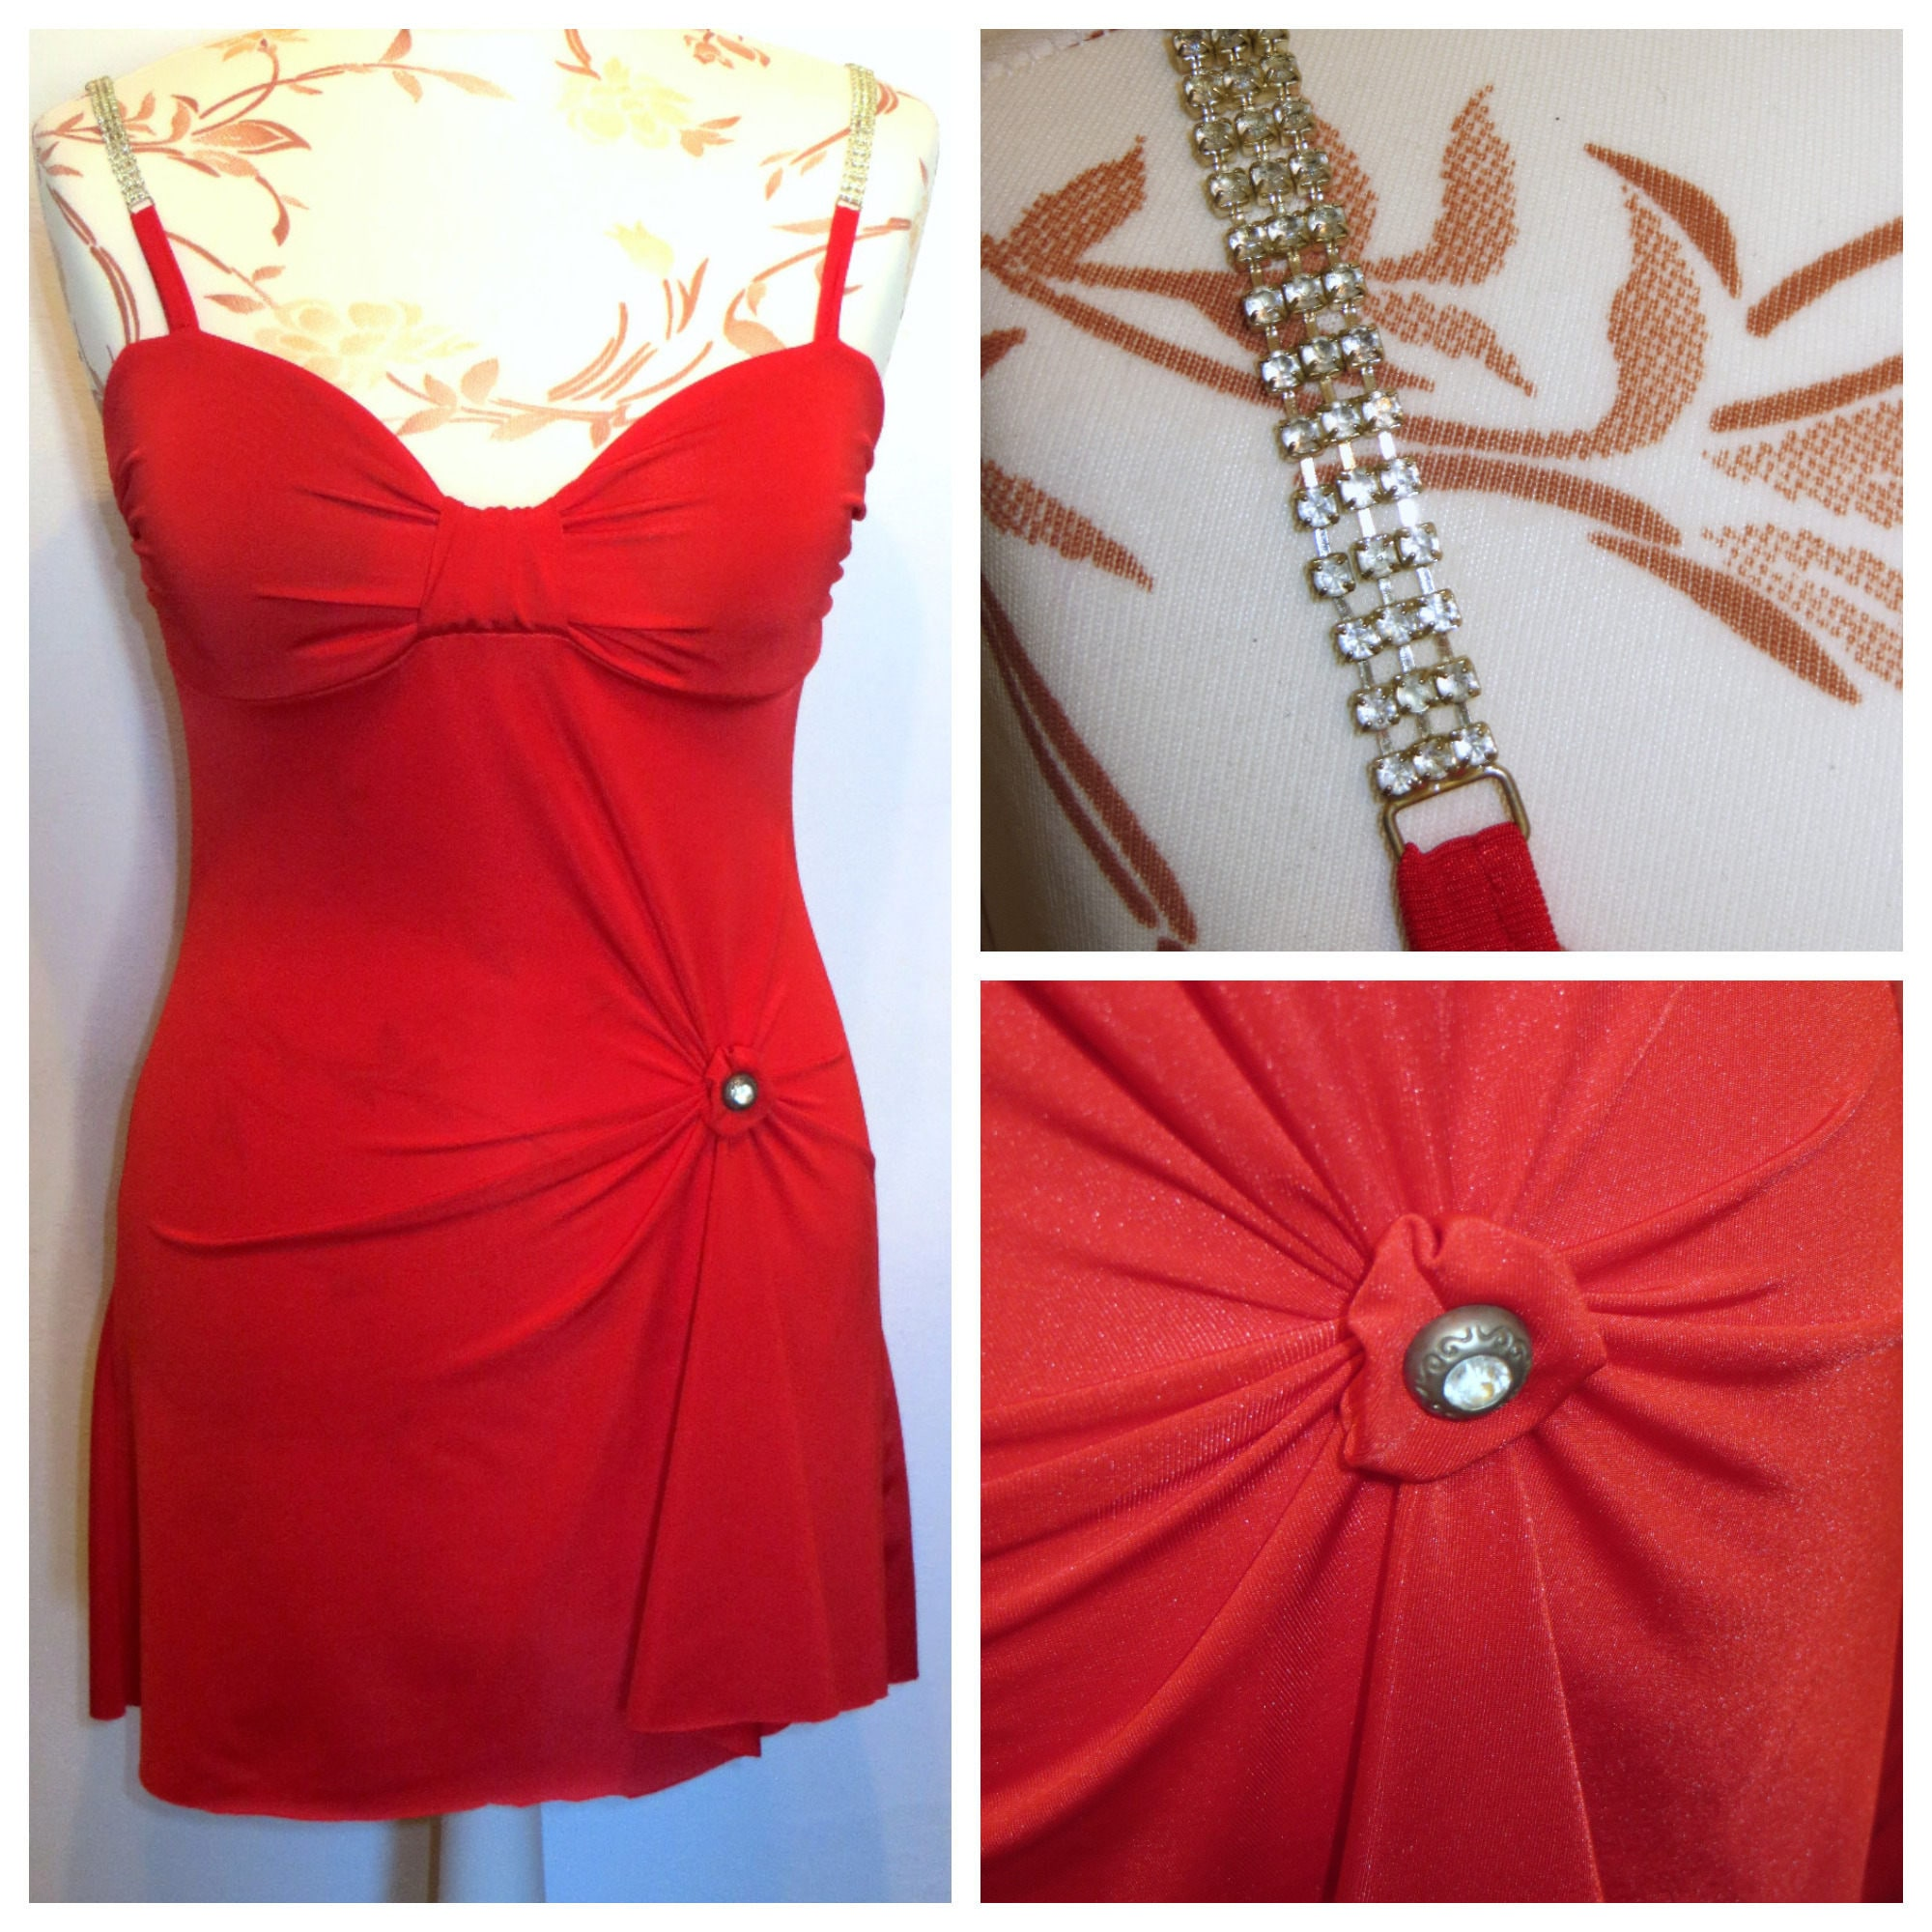 bb5f3a814210e6 Hot red corset Push up Bra with swarovksi straps Red Top Tunic